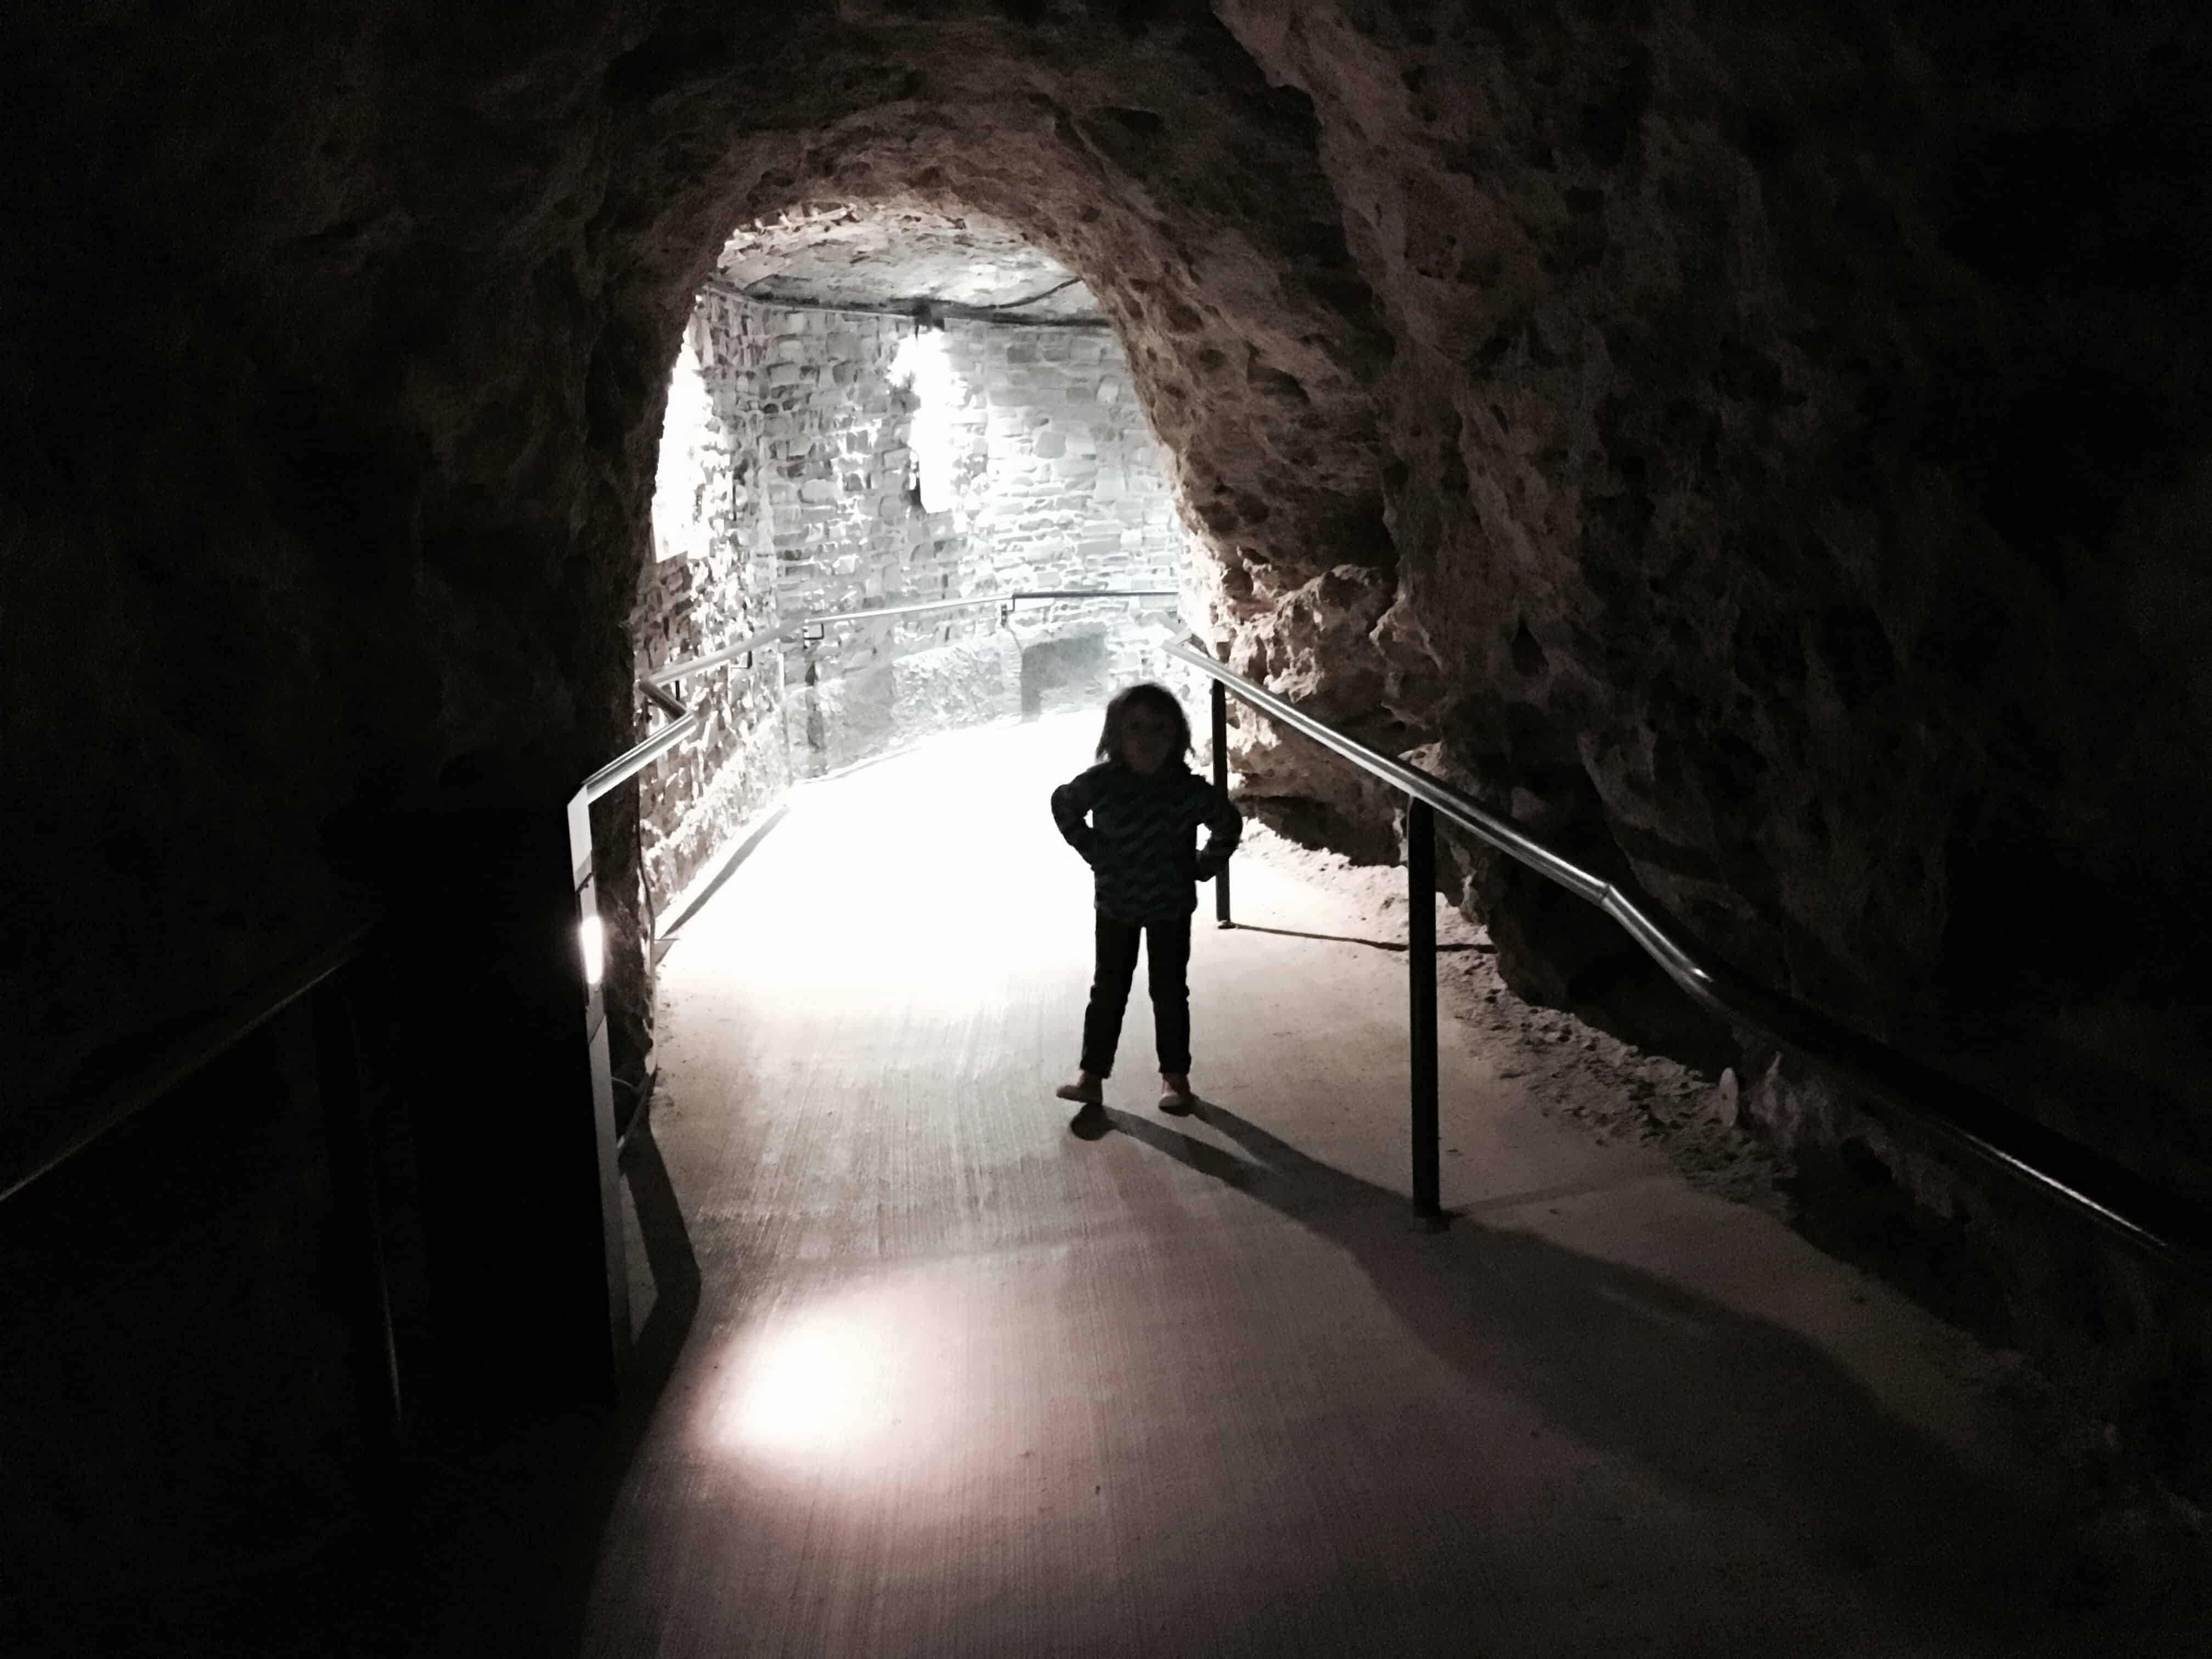 Explore Cave and Basin After Dark With Lanterns This Summer